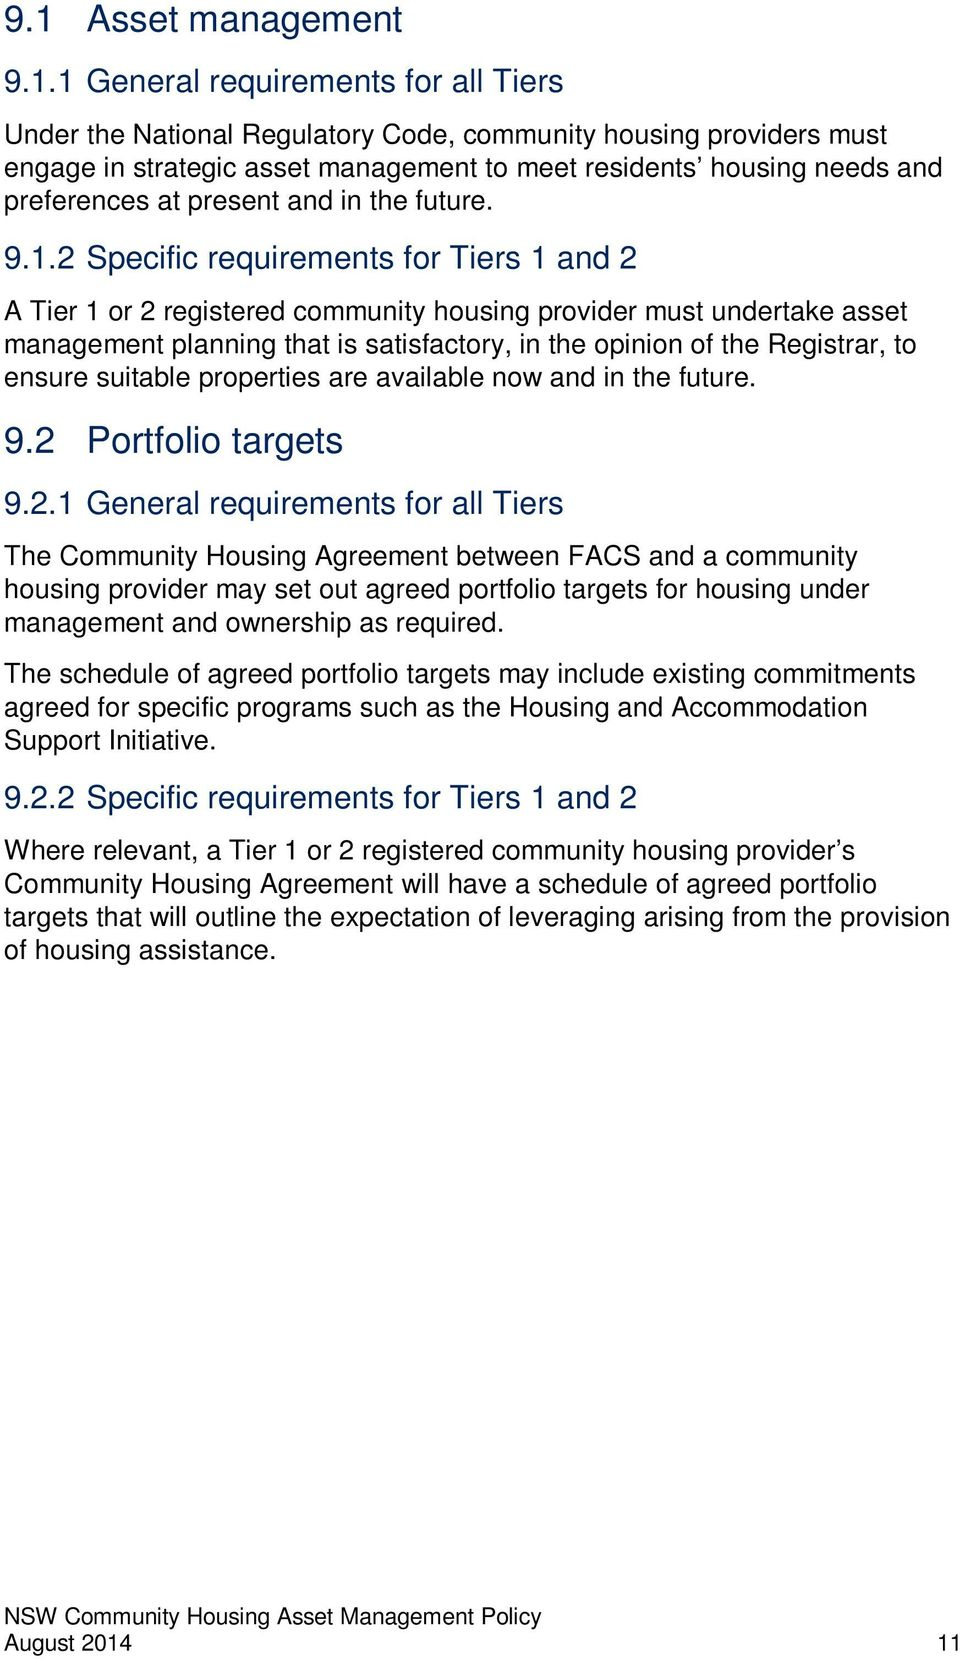 2 Specific requirements for Tiers 1 and 2 A Tier 1 or 2 registered community housing provider must undertake asset management planning that is satisfactory, in the opinion of the Registrar, to ensure